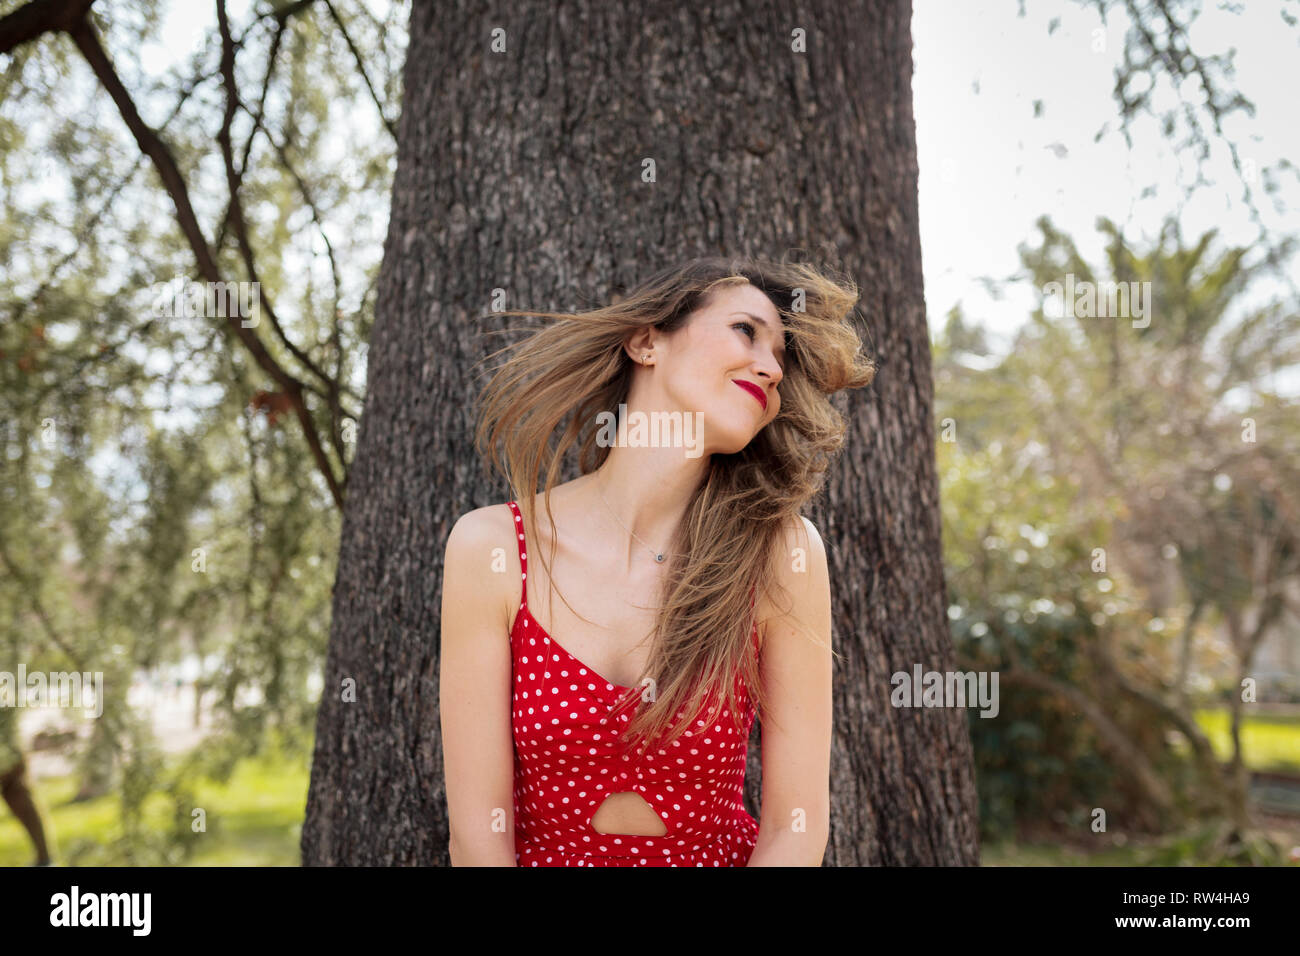 Young smiling blond woman with red dress moving her hair Stock Photo